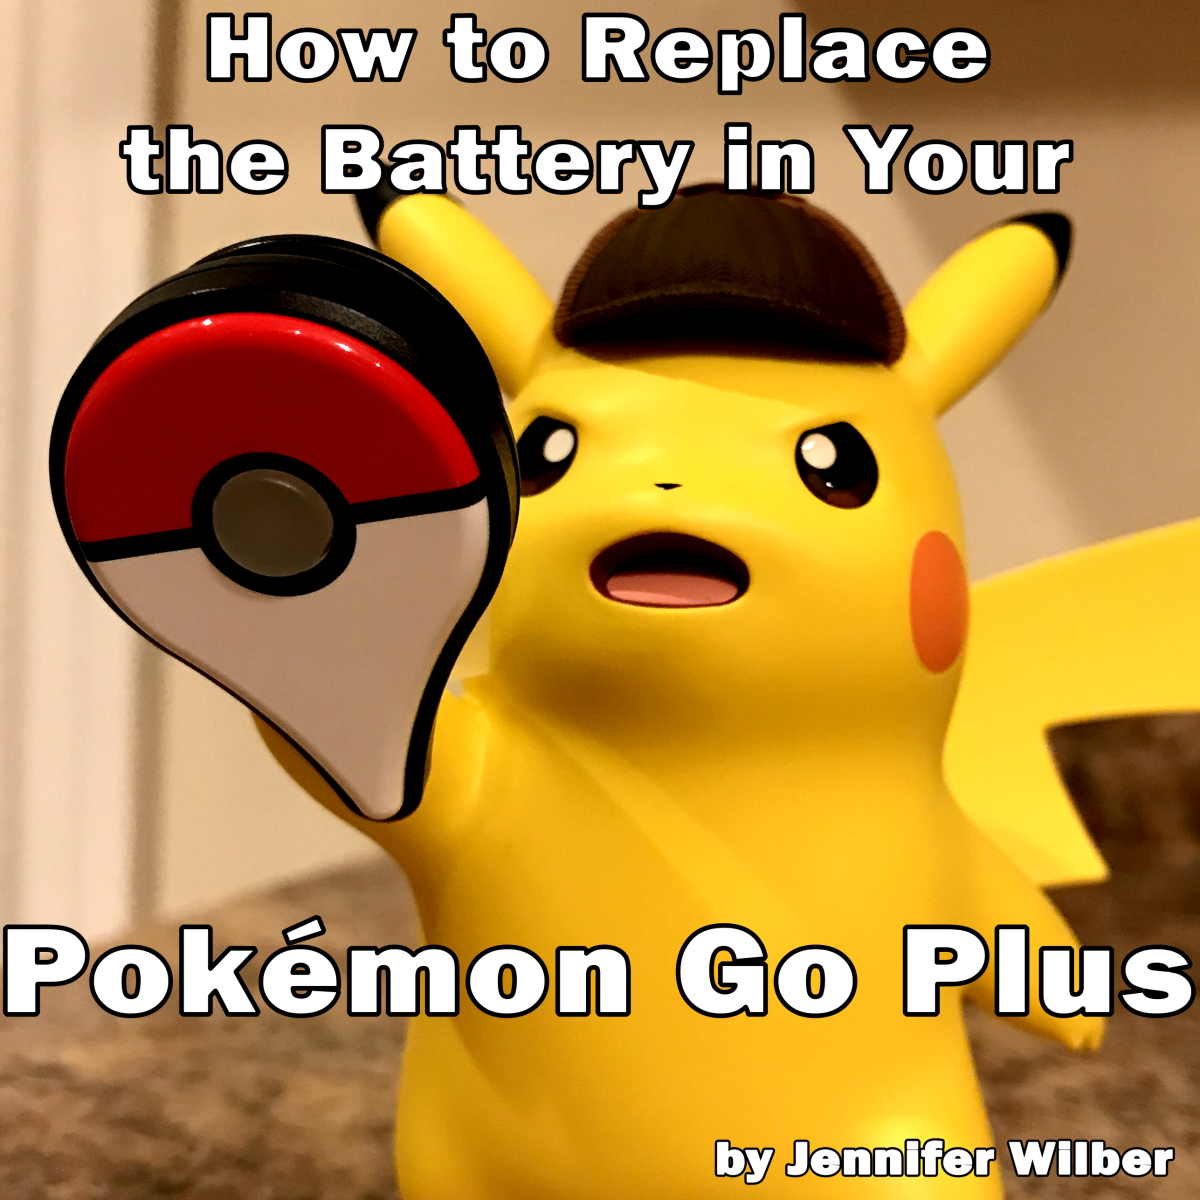 Detective Pikachu can't recharge his Pokemon Go Plus's battery with his electricity. He'll need to replace the battery like everyone else.